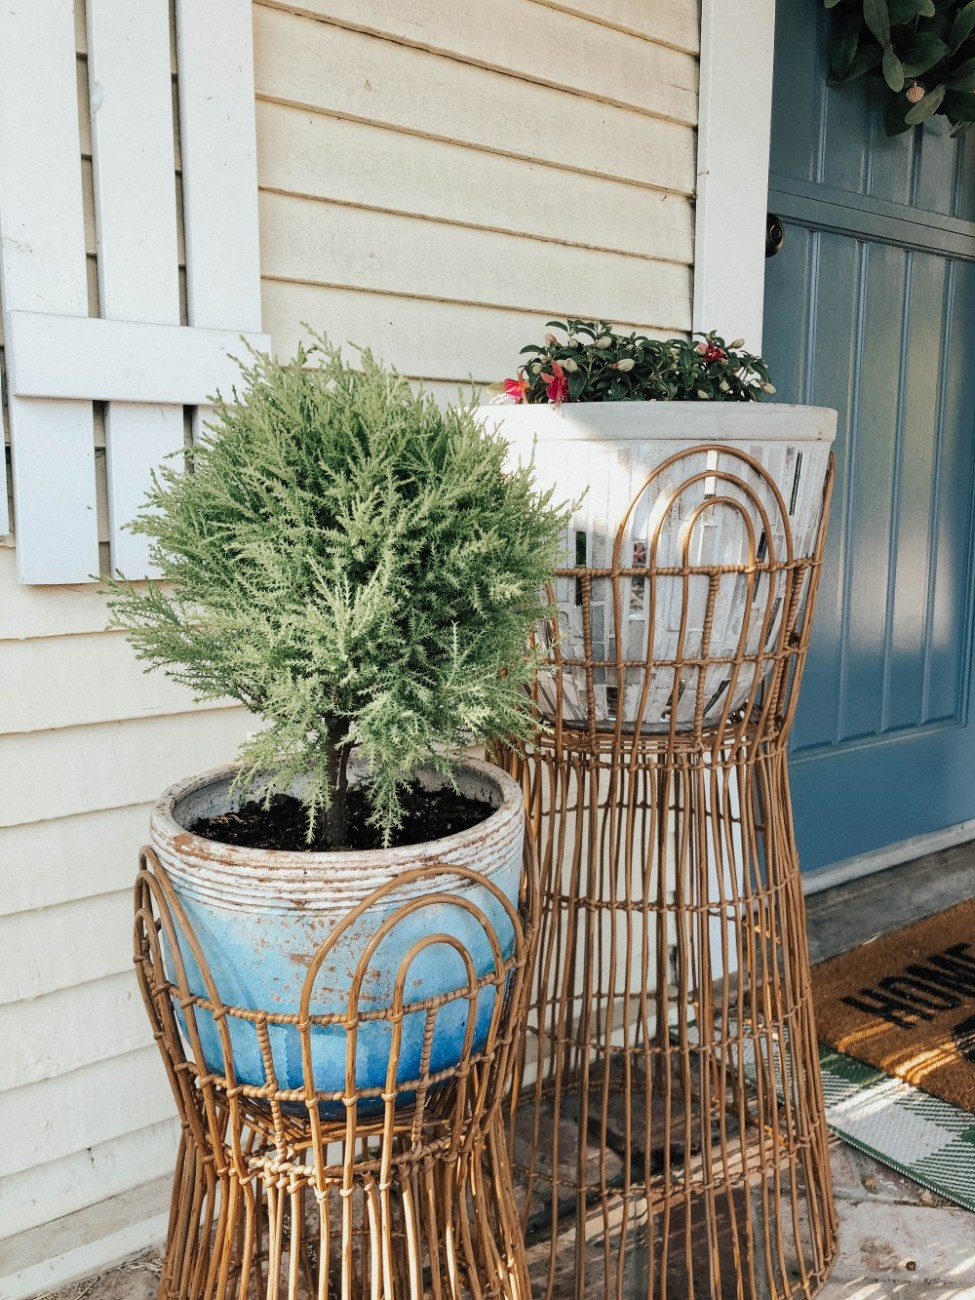 Elevate your summer with simple updates you can do around your home. Click on over to the post to check it out! #homeupdates #summer #homeandgarden #gardening #homedecor